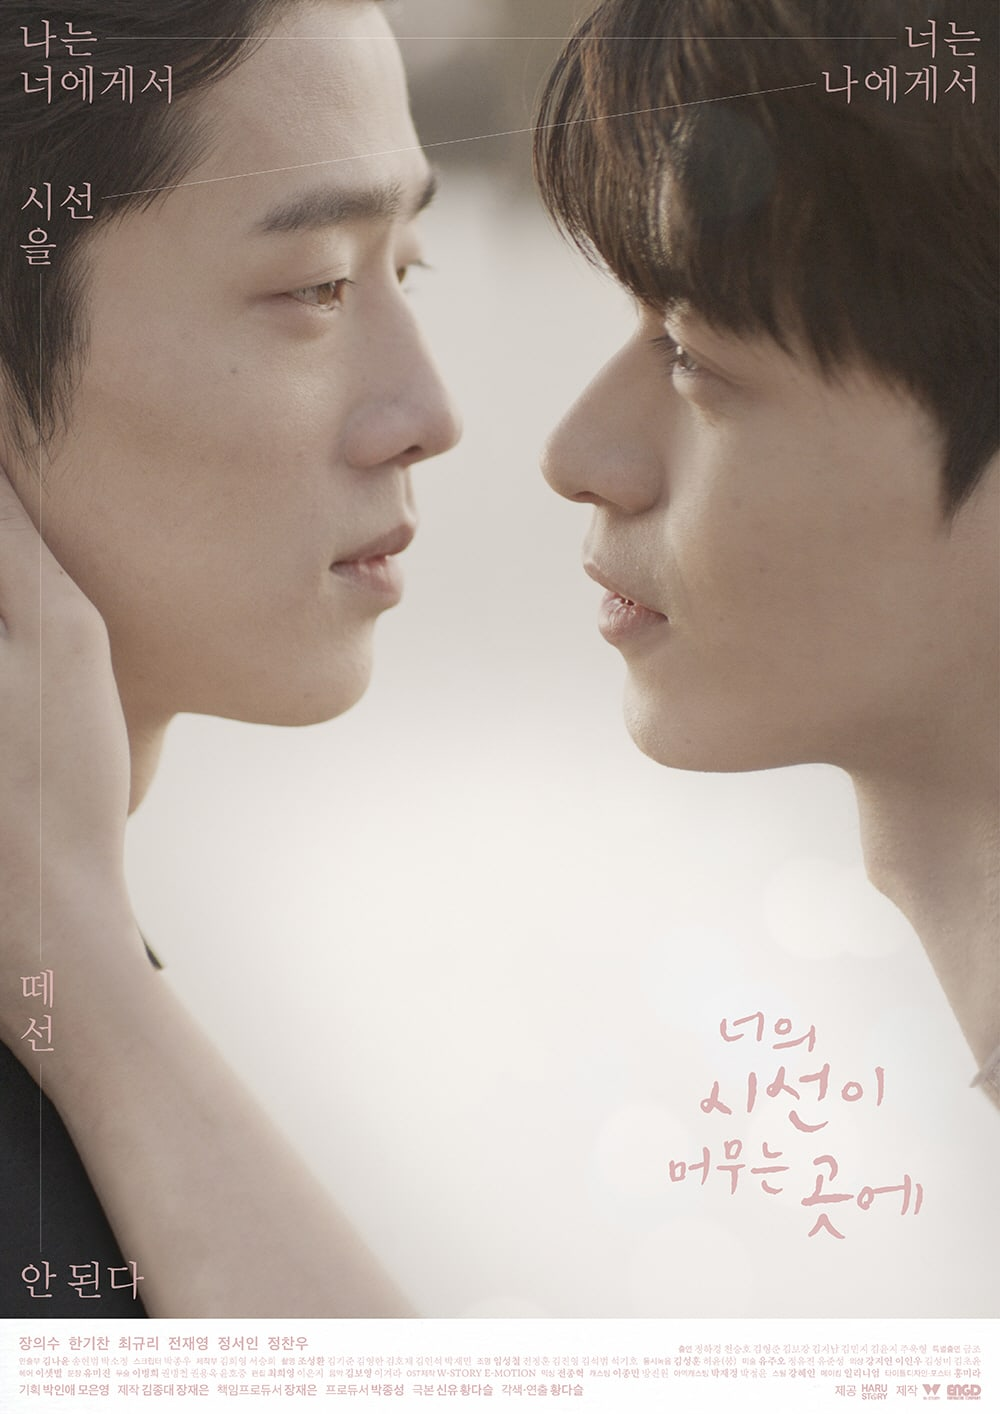 Gay Korean Drama Poster